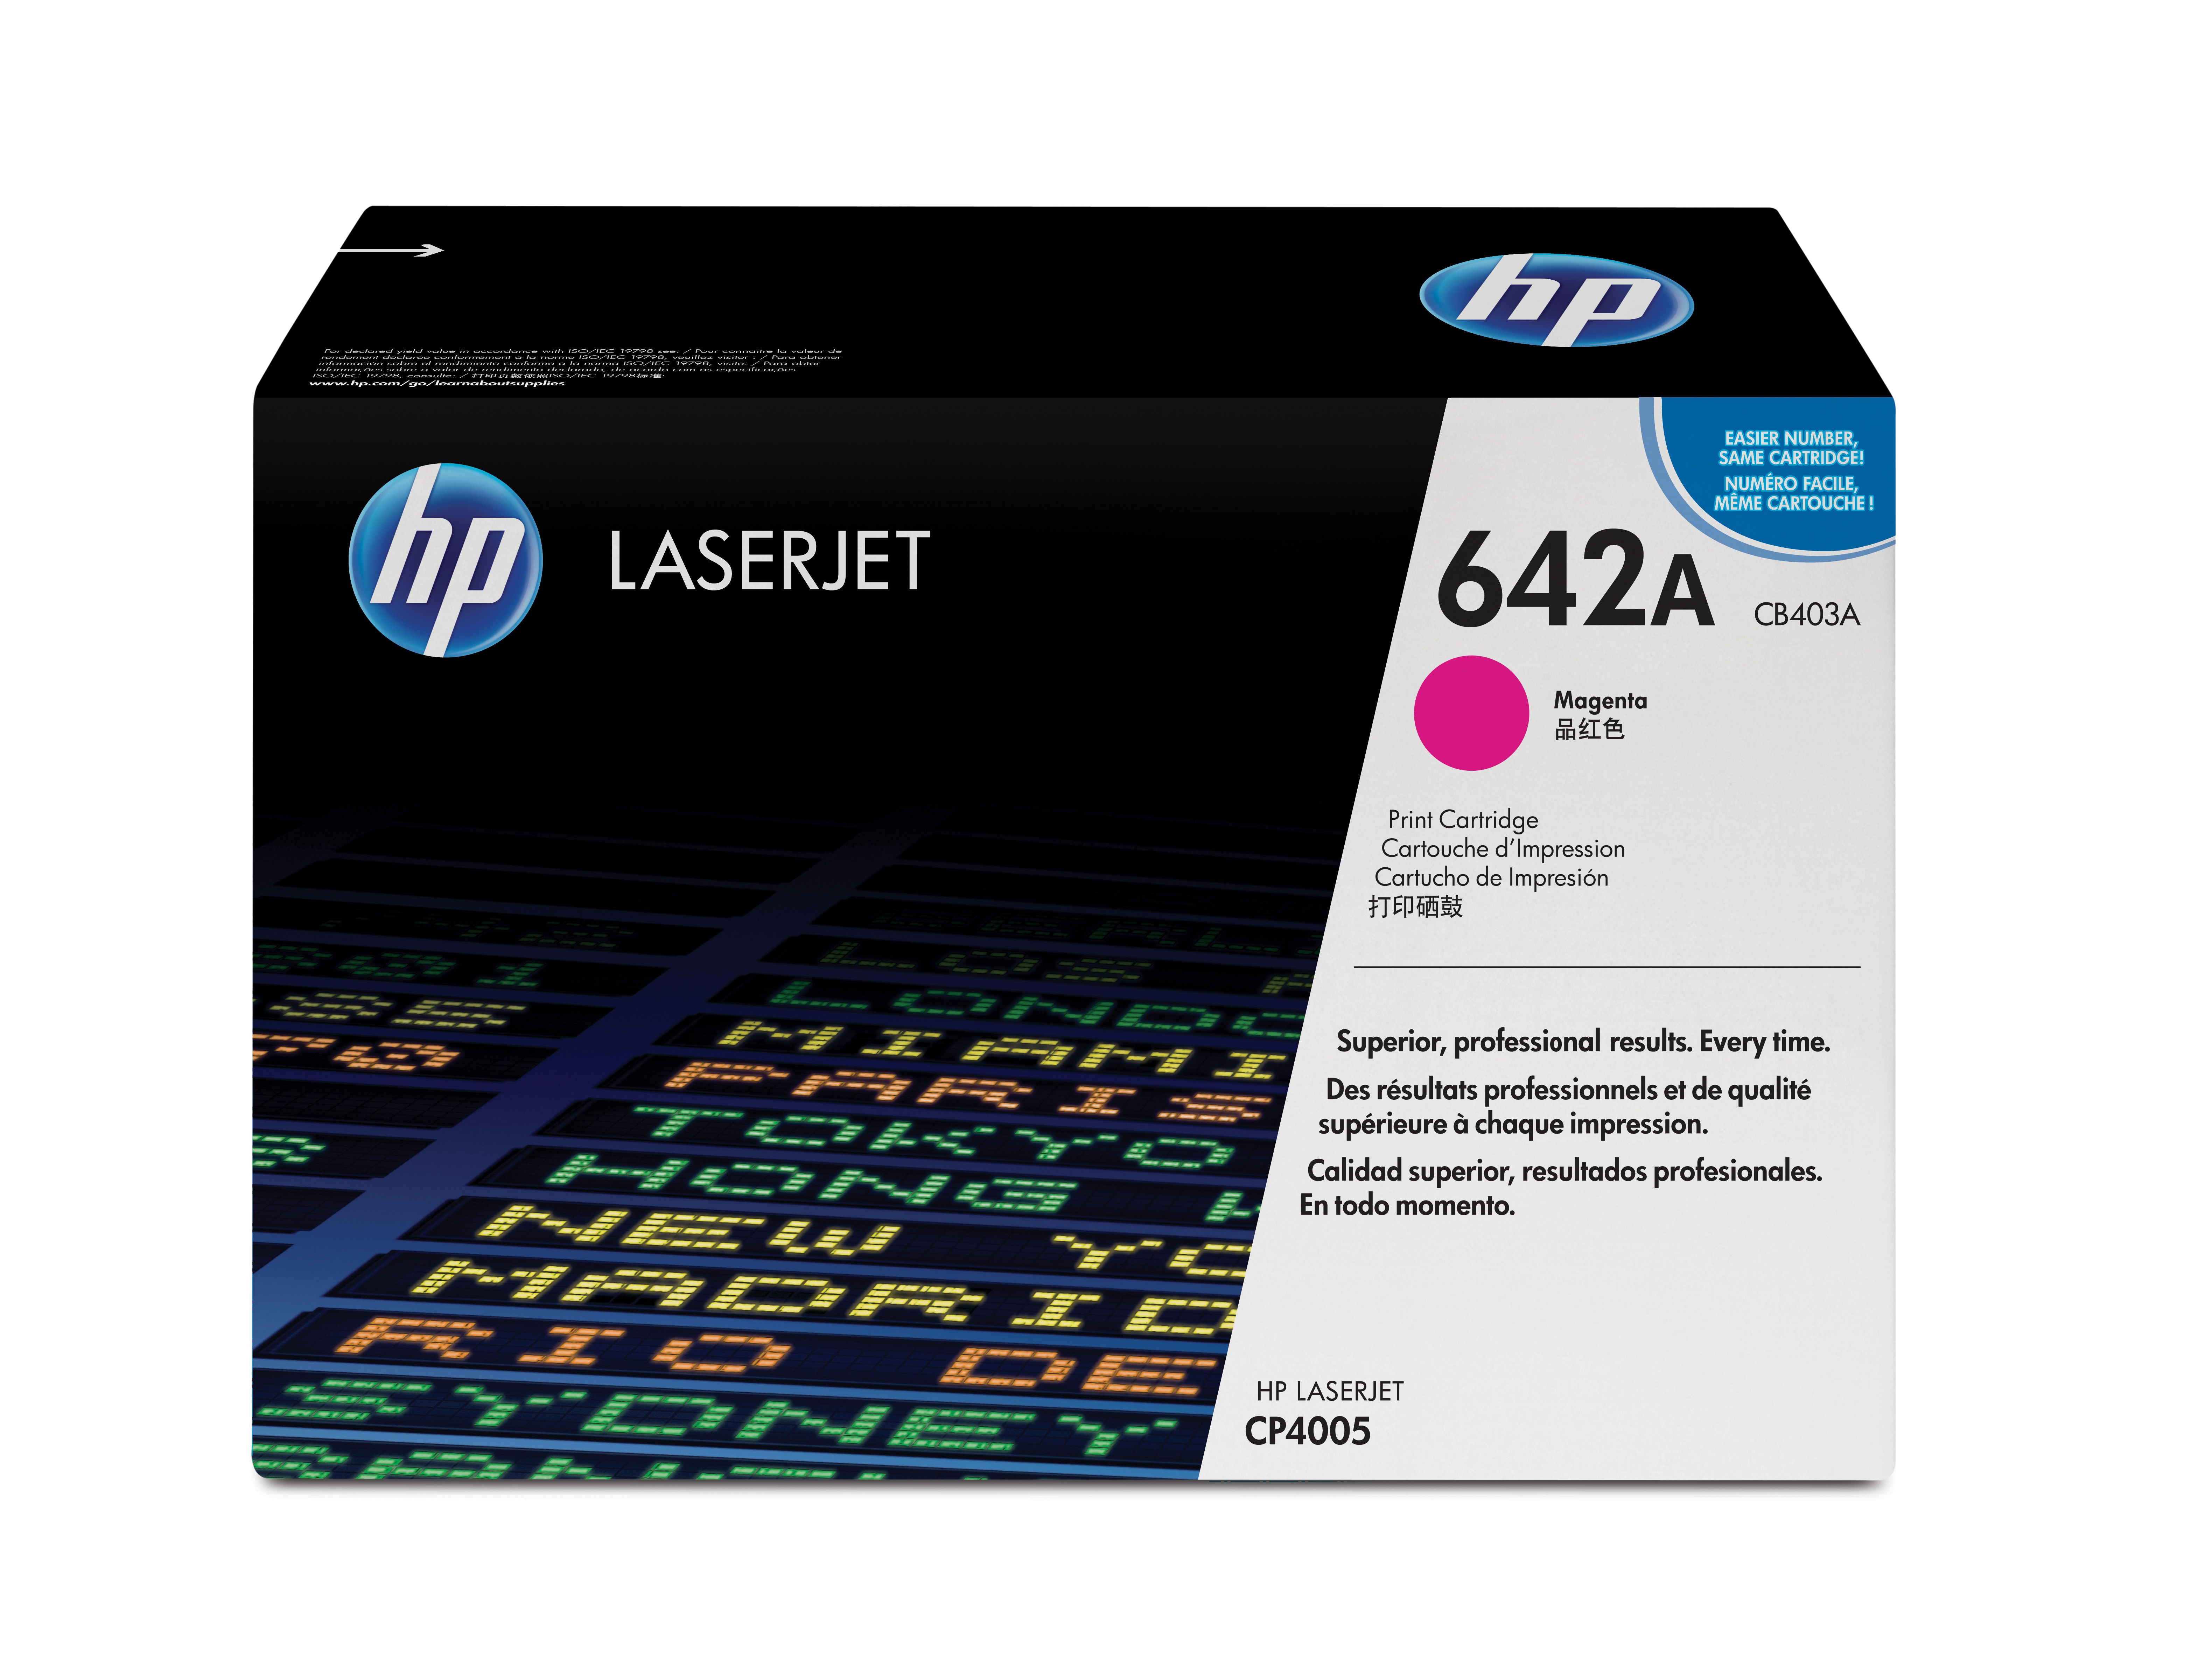 Remanufactured HP CB403A Toner Cartridge Magenta CB403A - rem01